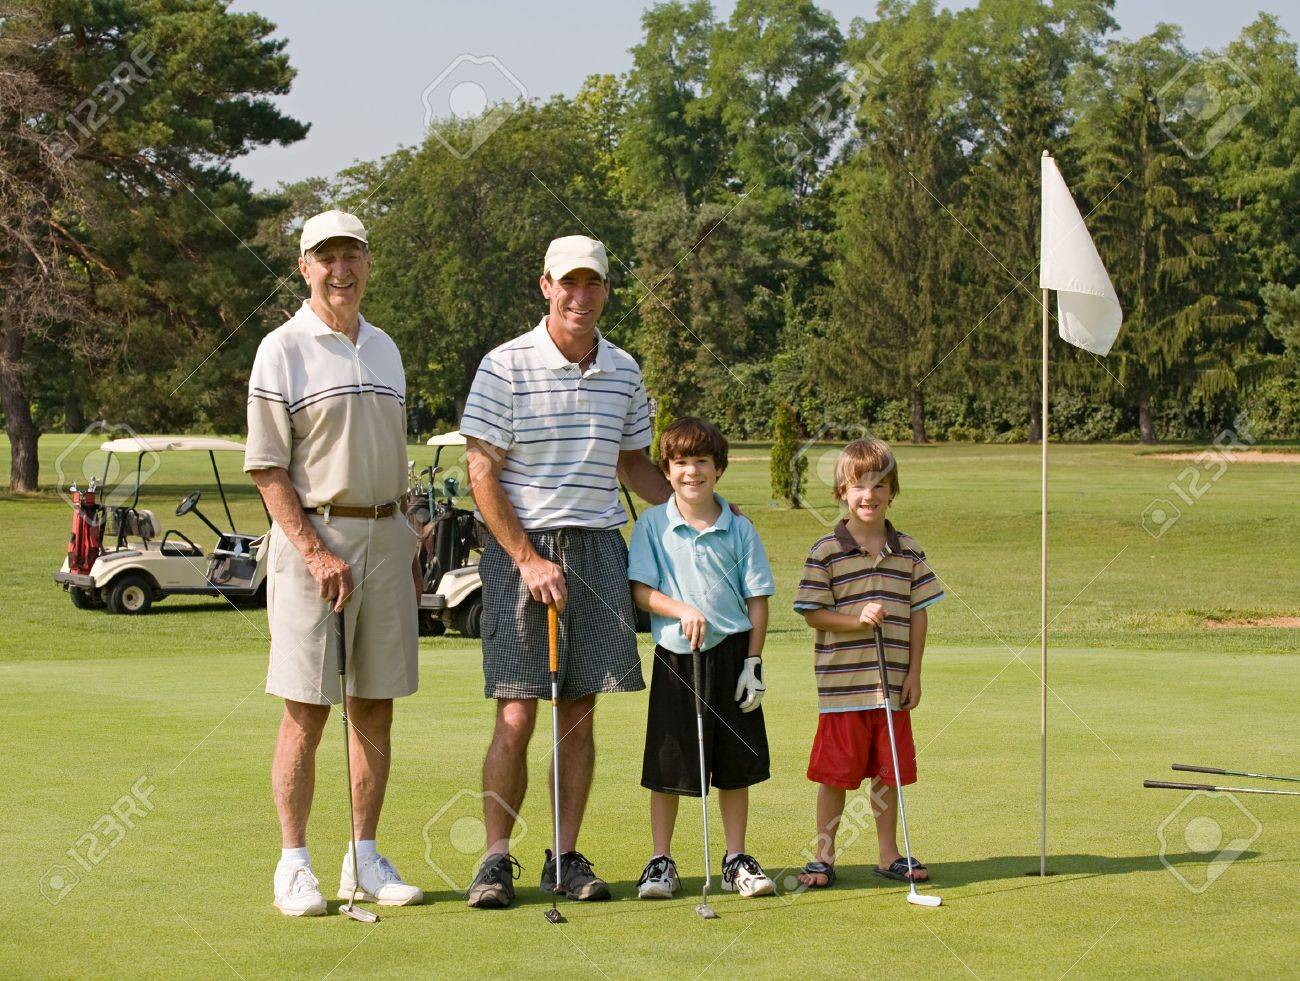 Family Playing Golf Stock Photo - 3551249